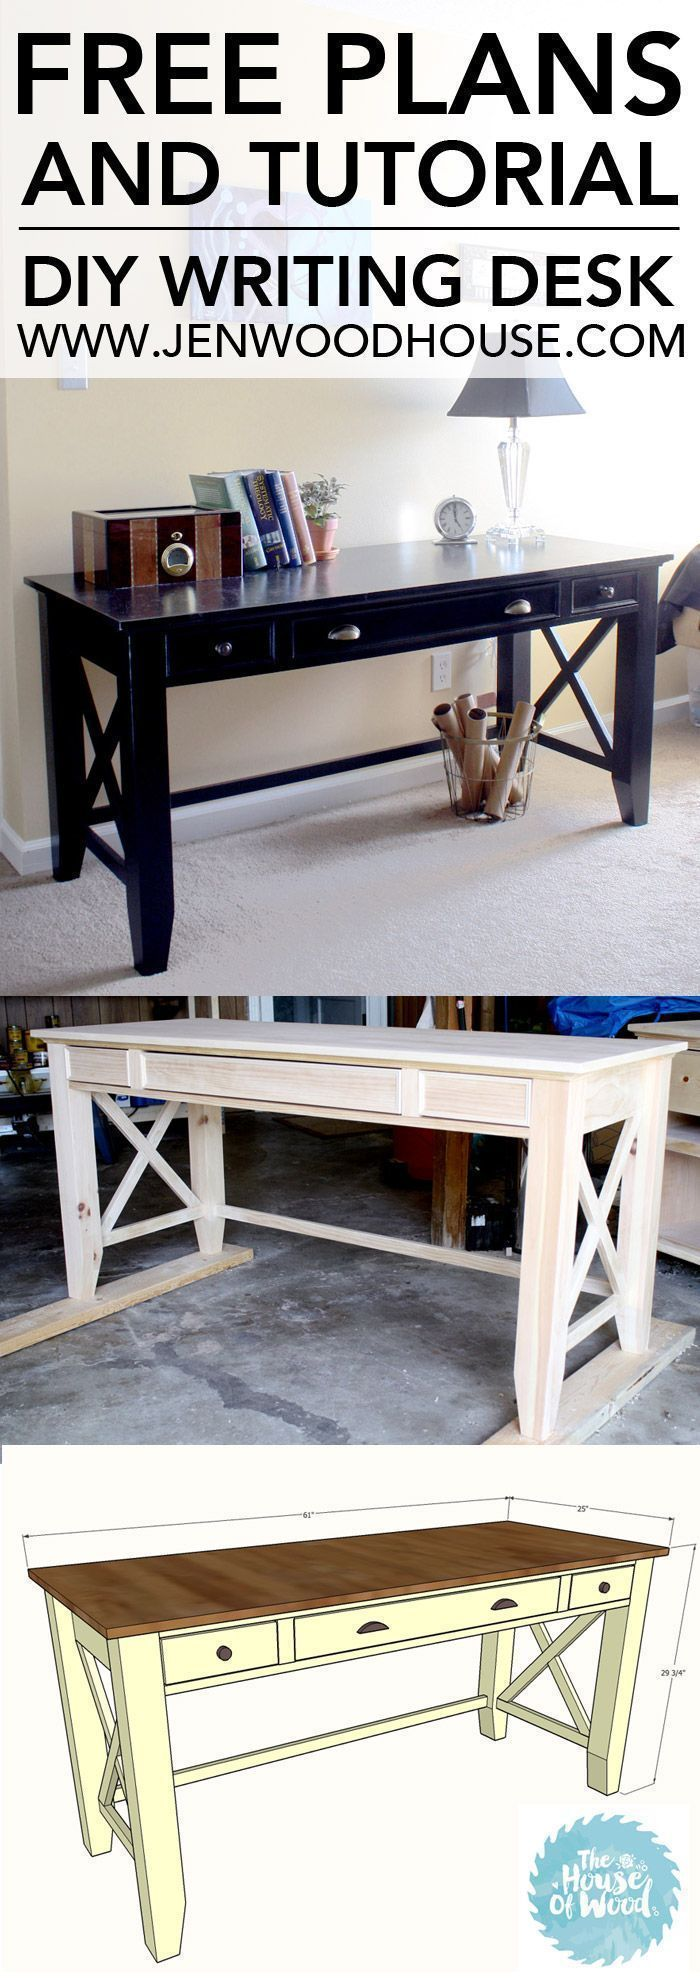 I love this DIY writing desk! She shows you how to